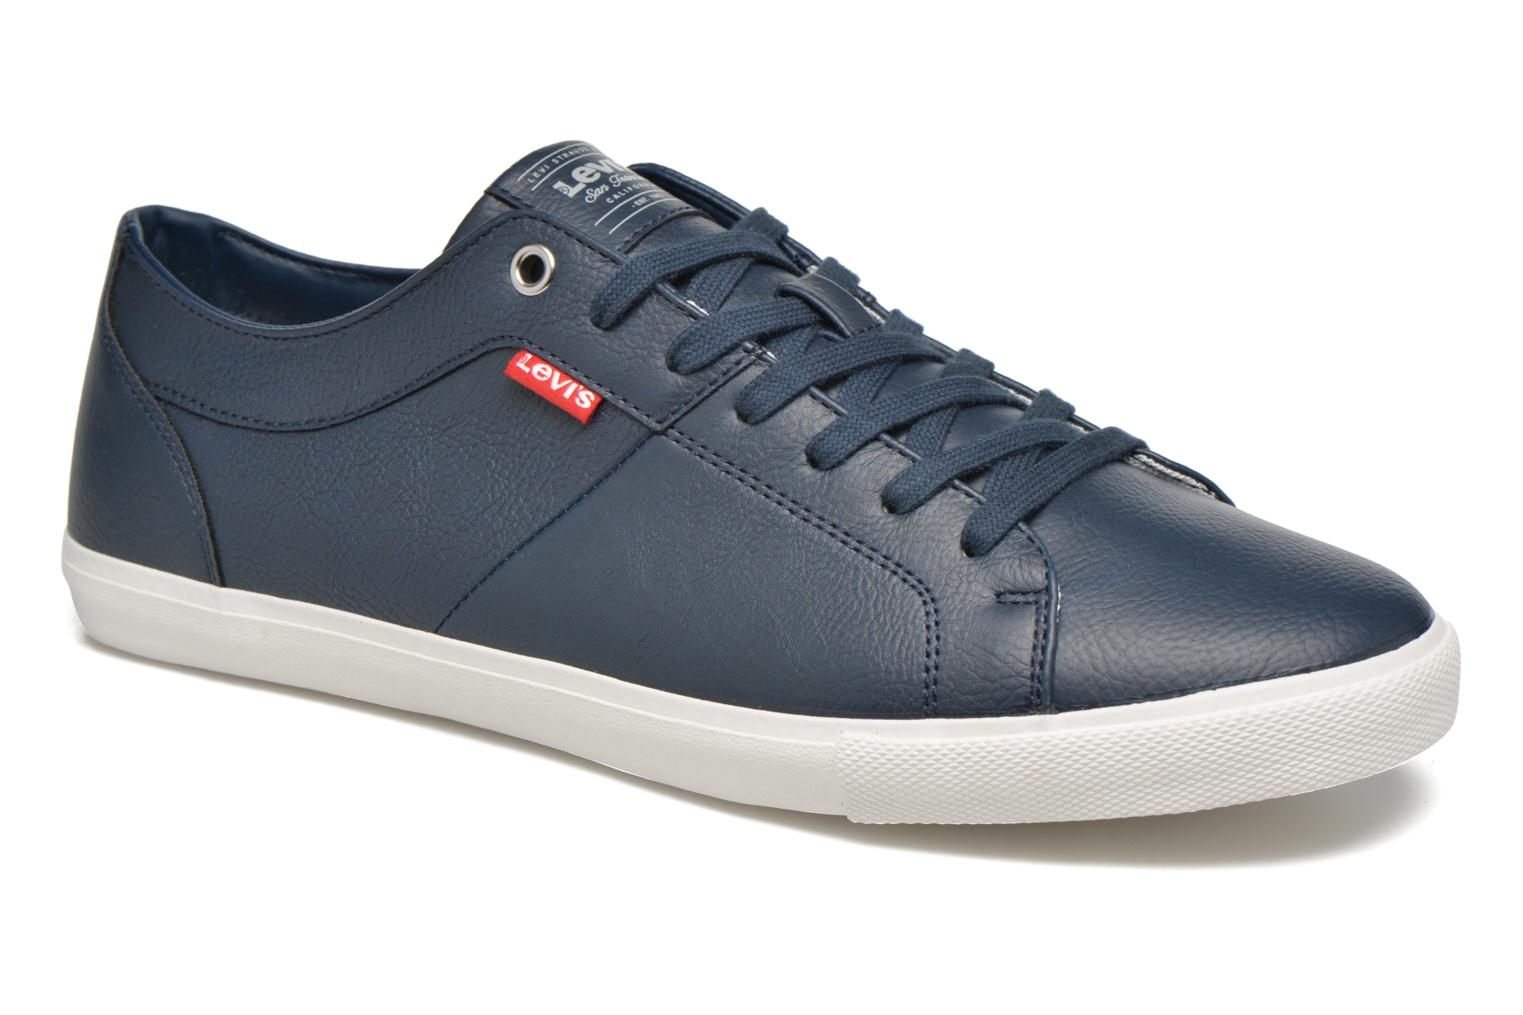 Woods Navy Blue